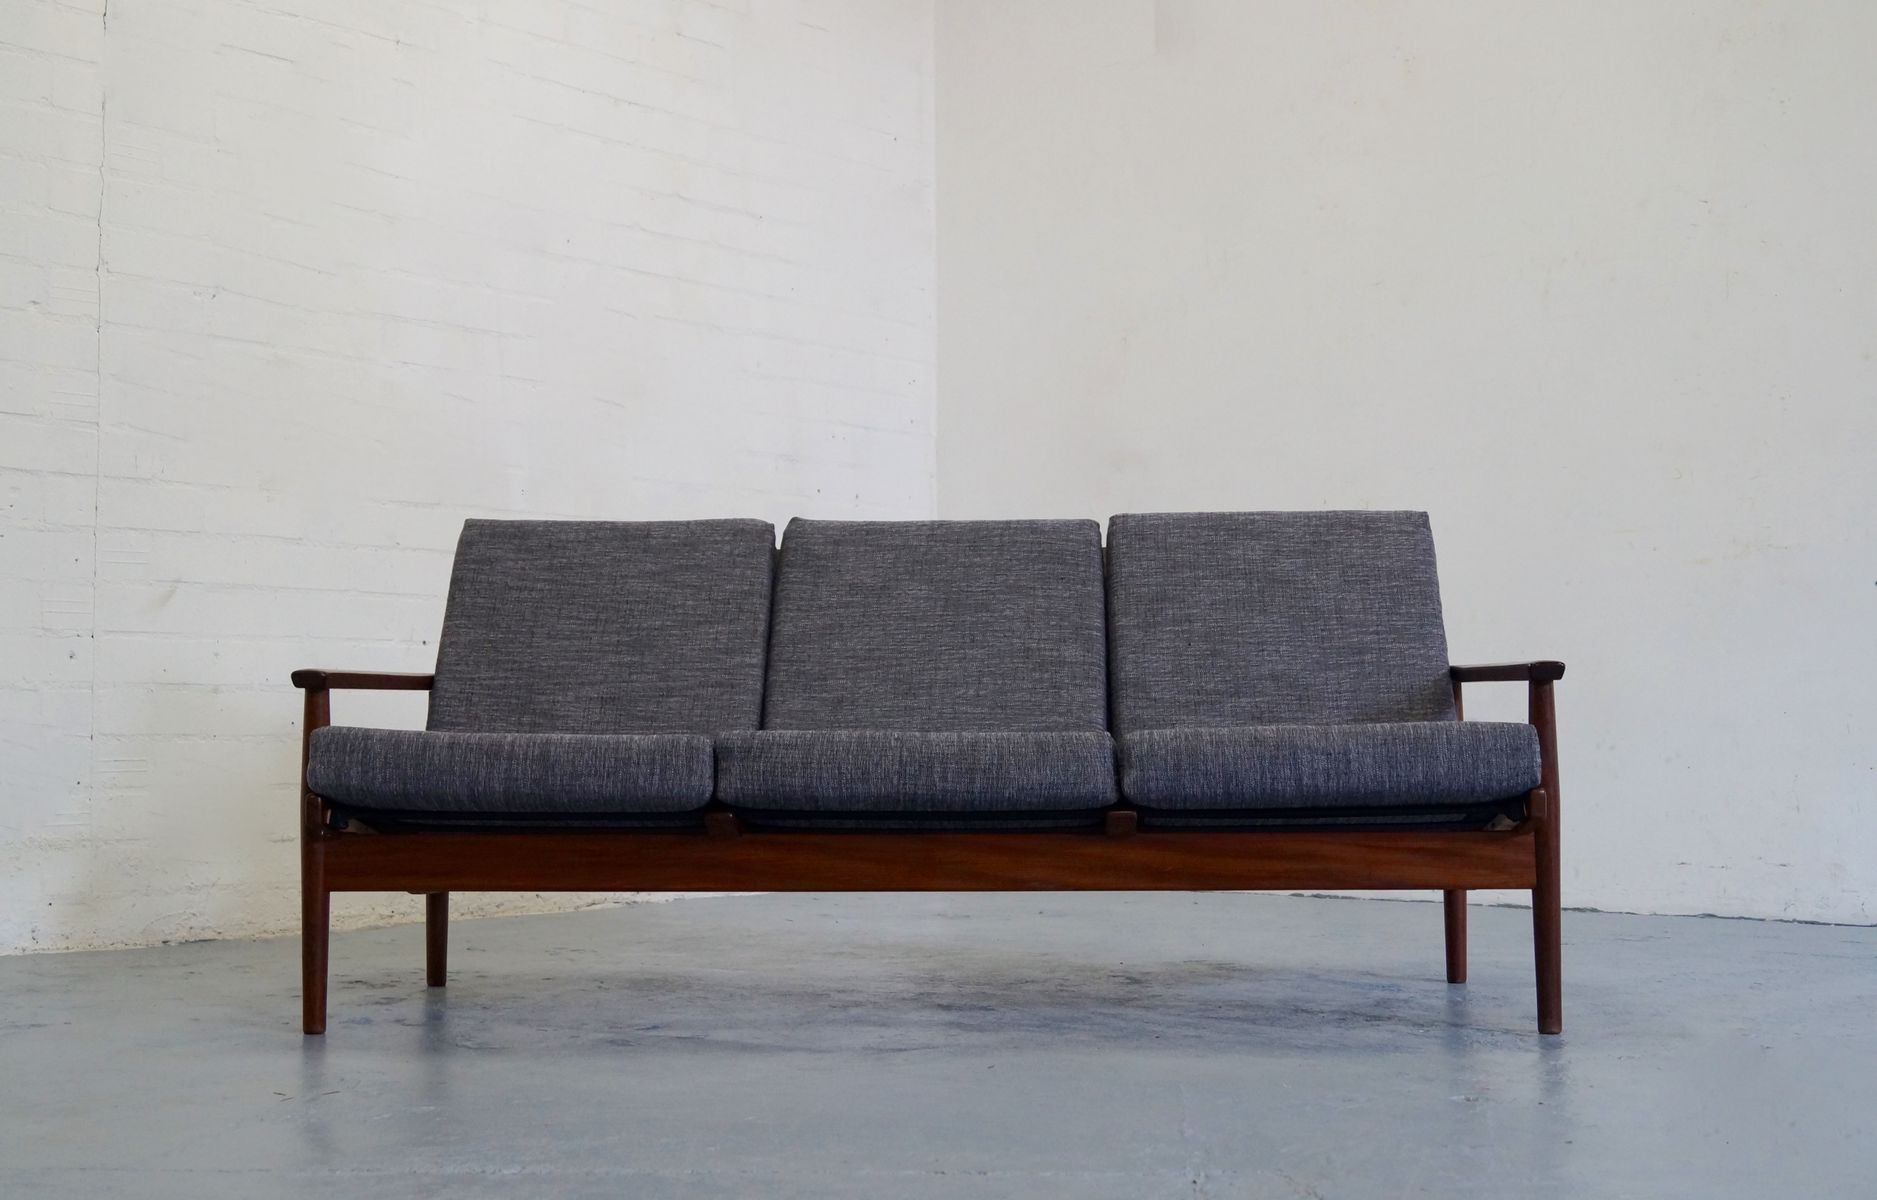 Vintage Three Seater Teak Sofa From De Ster Gelderland For Sale At Pamono